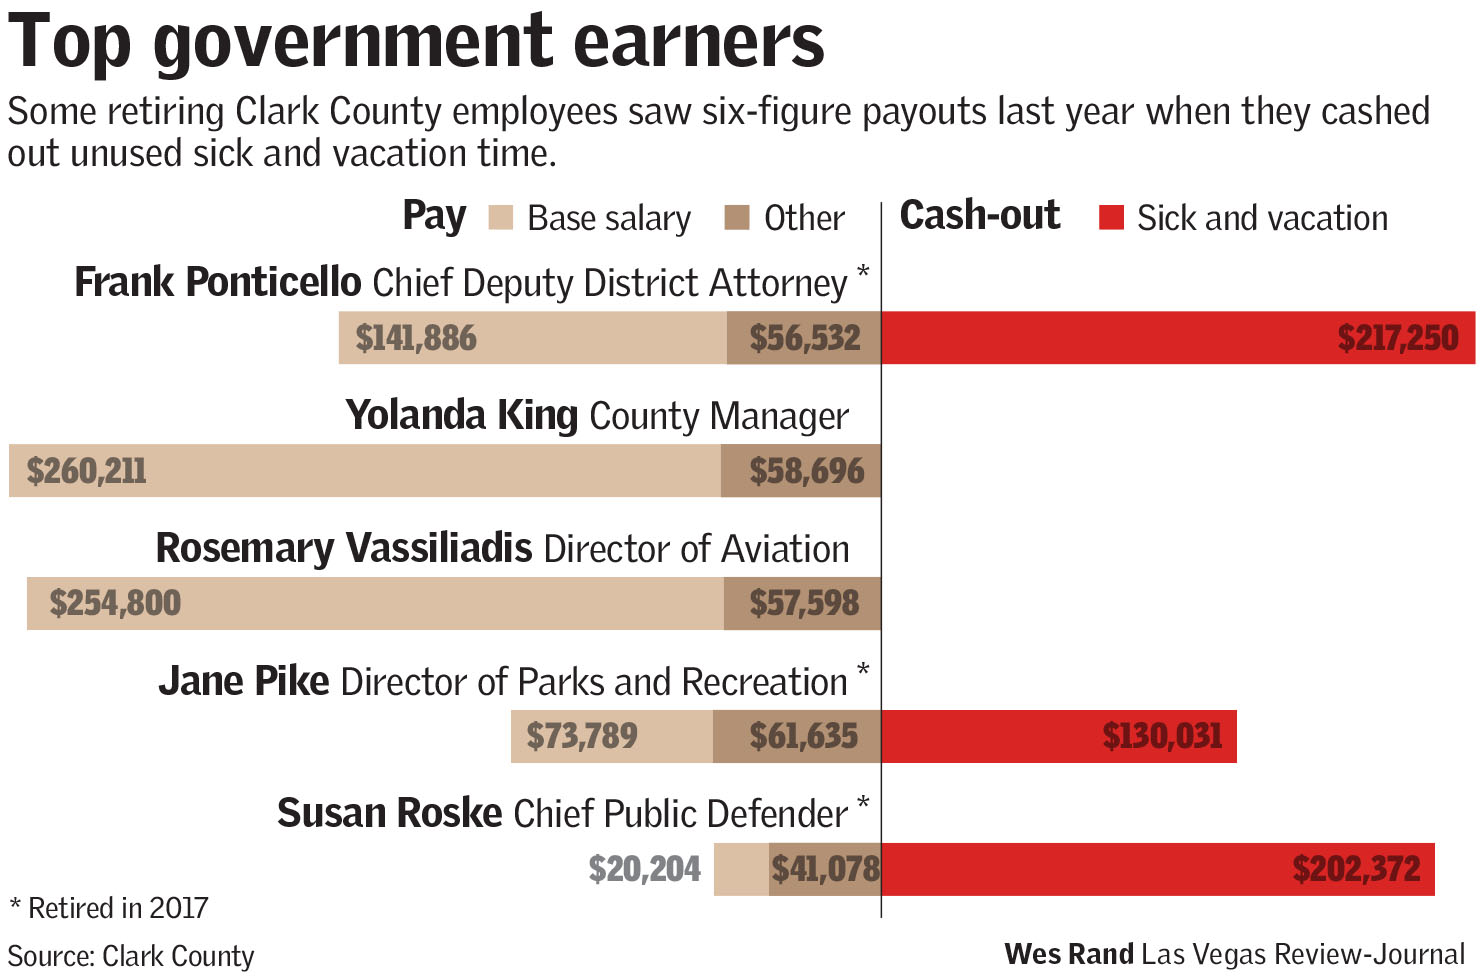 Clark County payroll increases by $15M from 2016 | Las Vegas Review